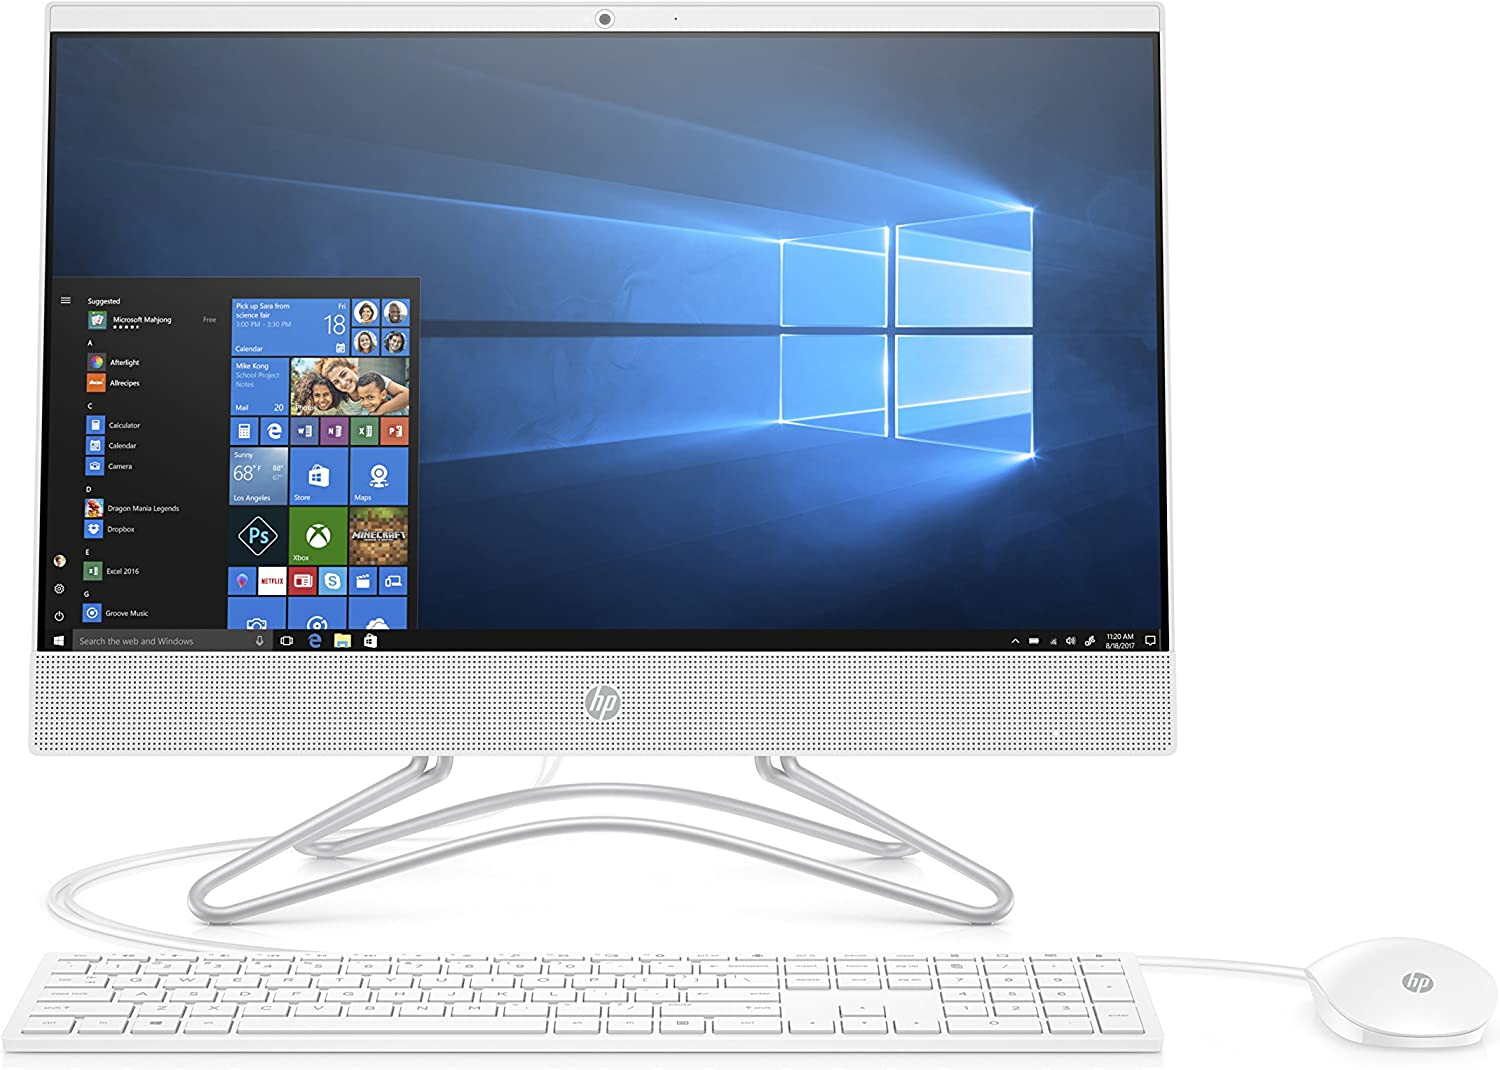 'HP Desktop PC, Intel Core i3 – 8130u, 8 GB de RAM, SATA de 1 TB, Pantalla de 21.5 FHD IPS WLED, Blanco